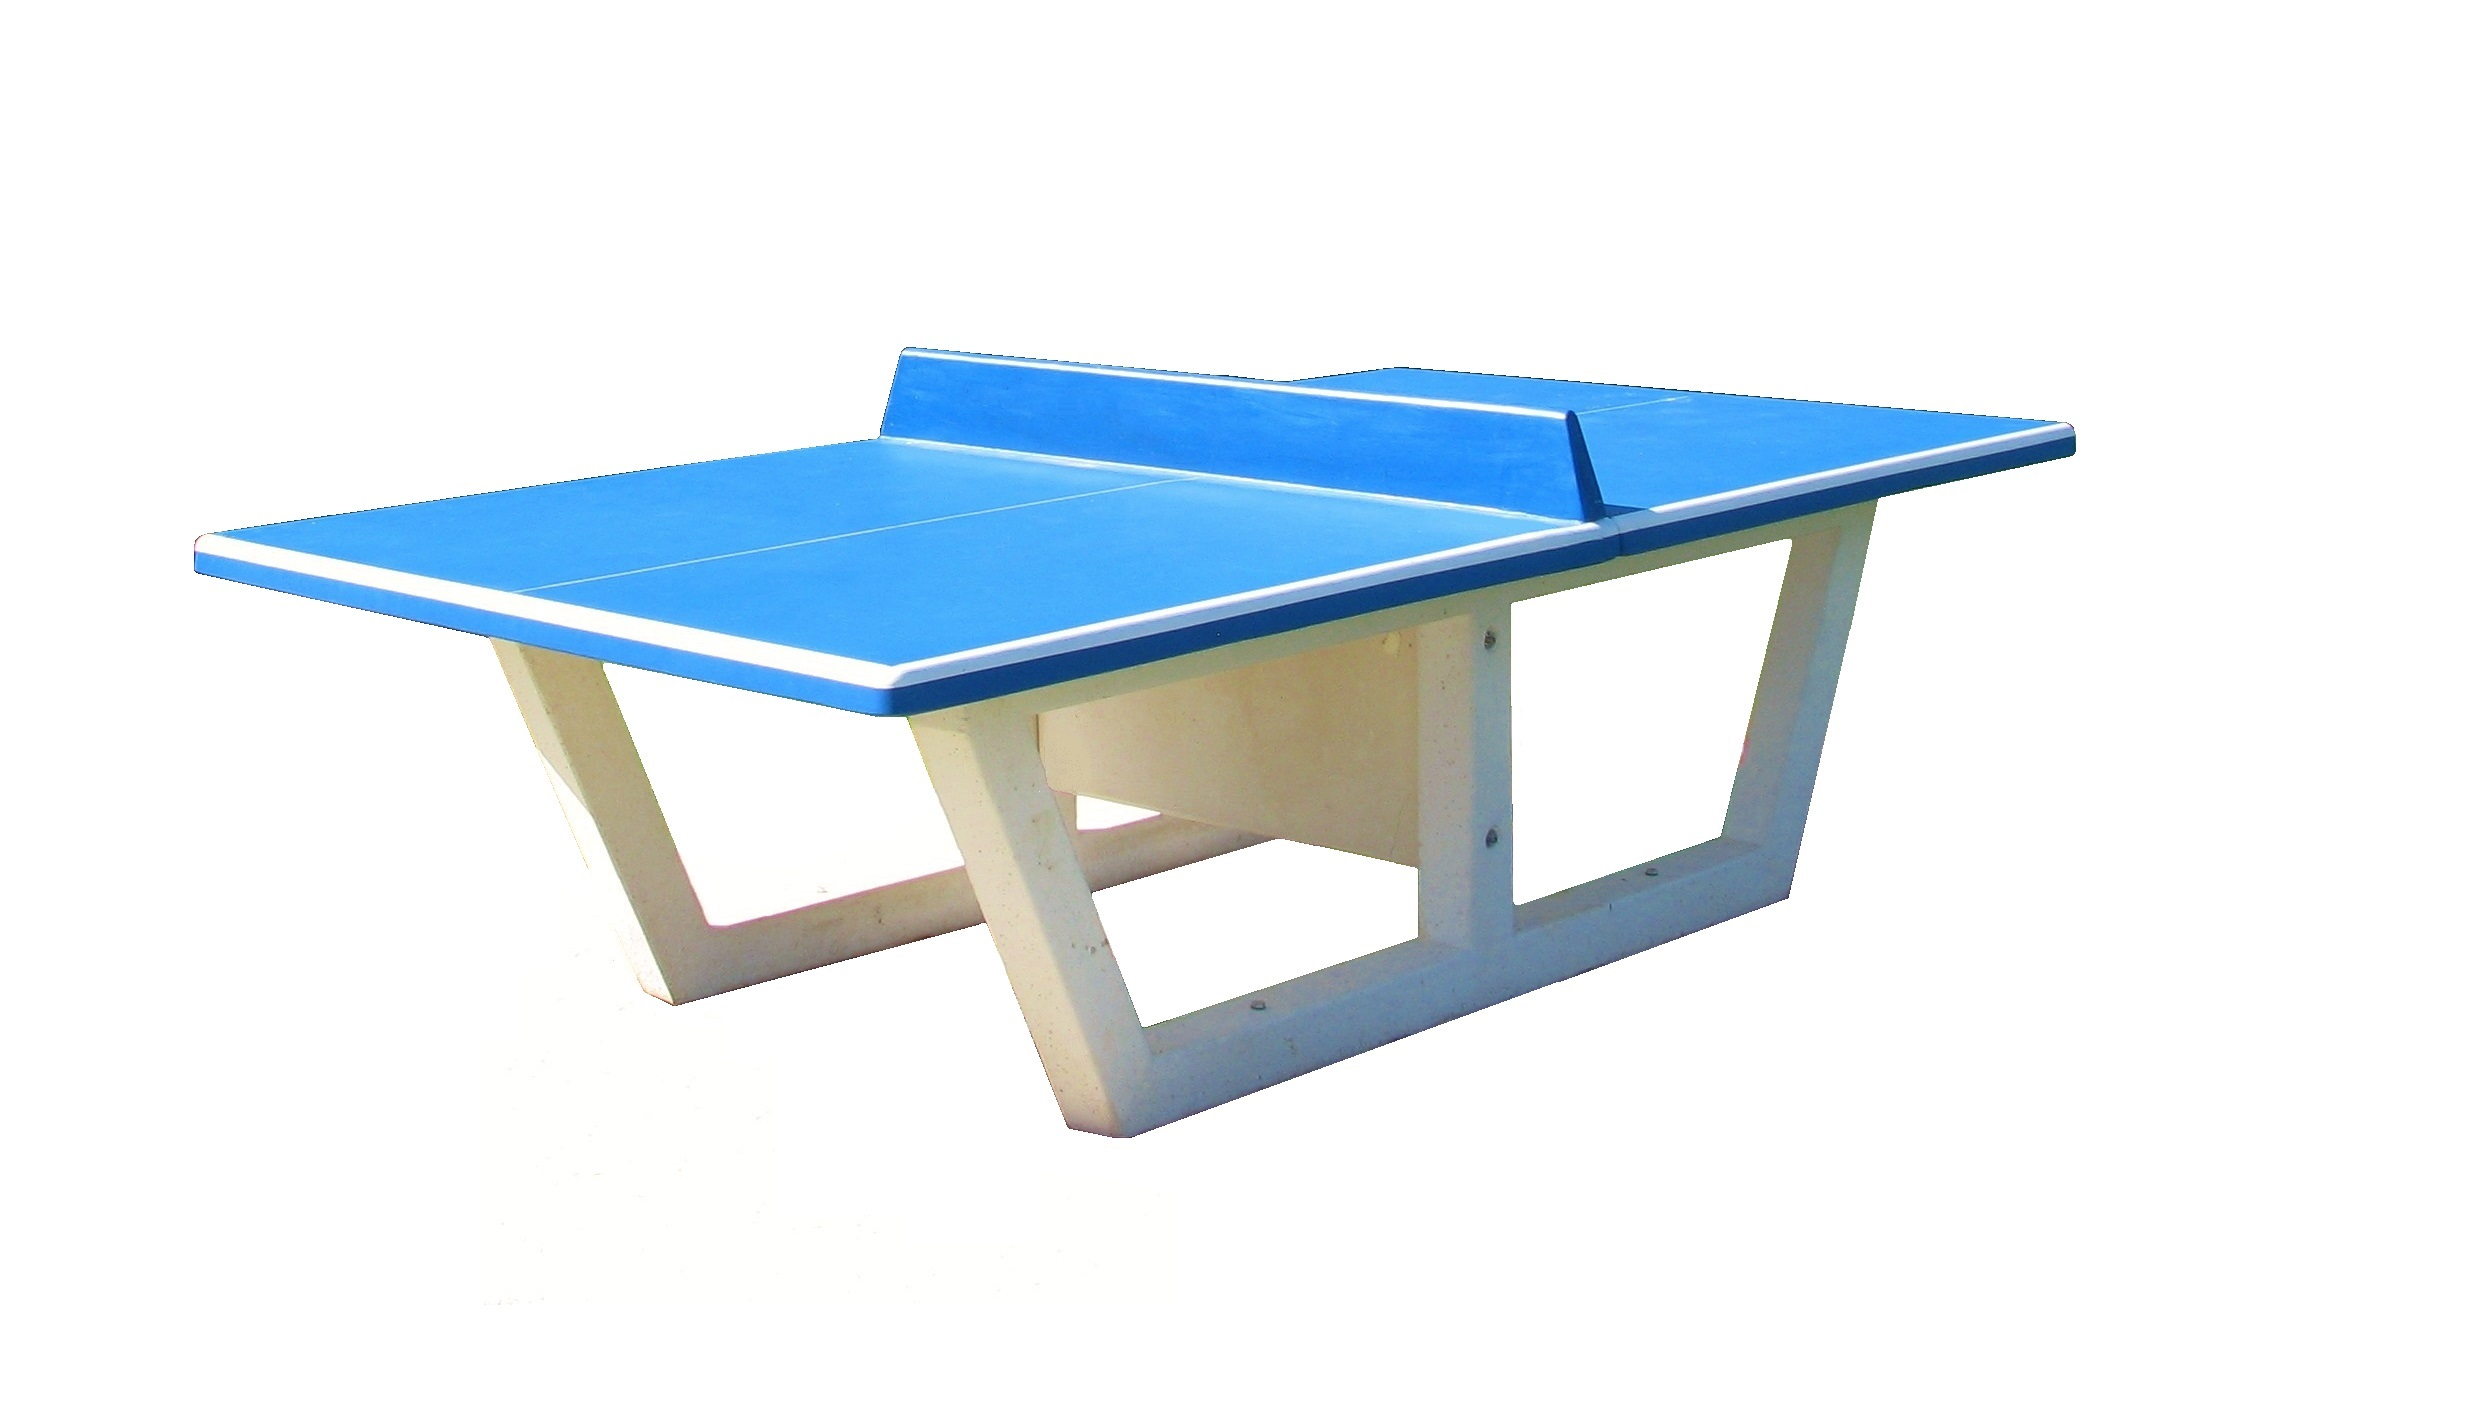 Solde Table De Ping Pong Table De Ping Pong En Béton Emrodis